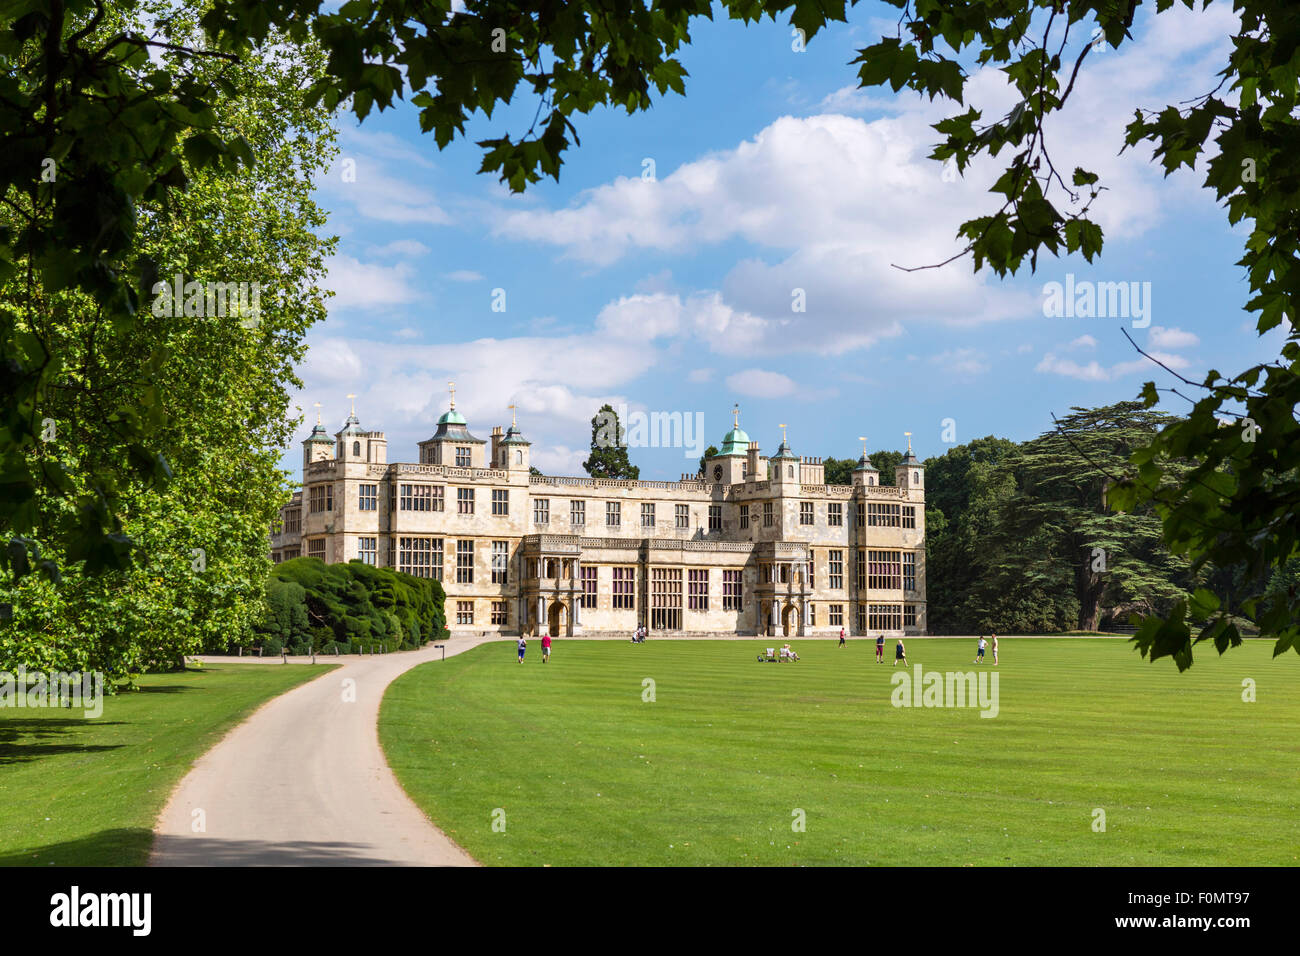 Audley End House, a 17thC country house near Saffron Waldon, Essex, England, UK - Stock Image